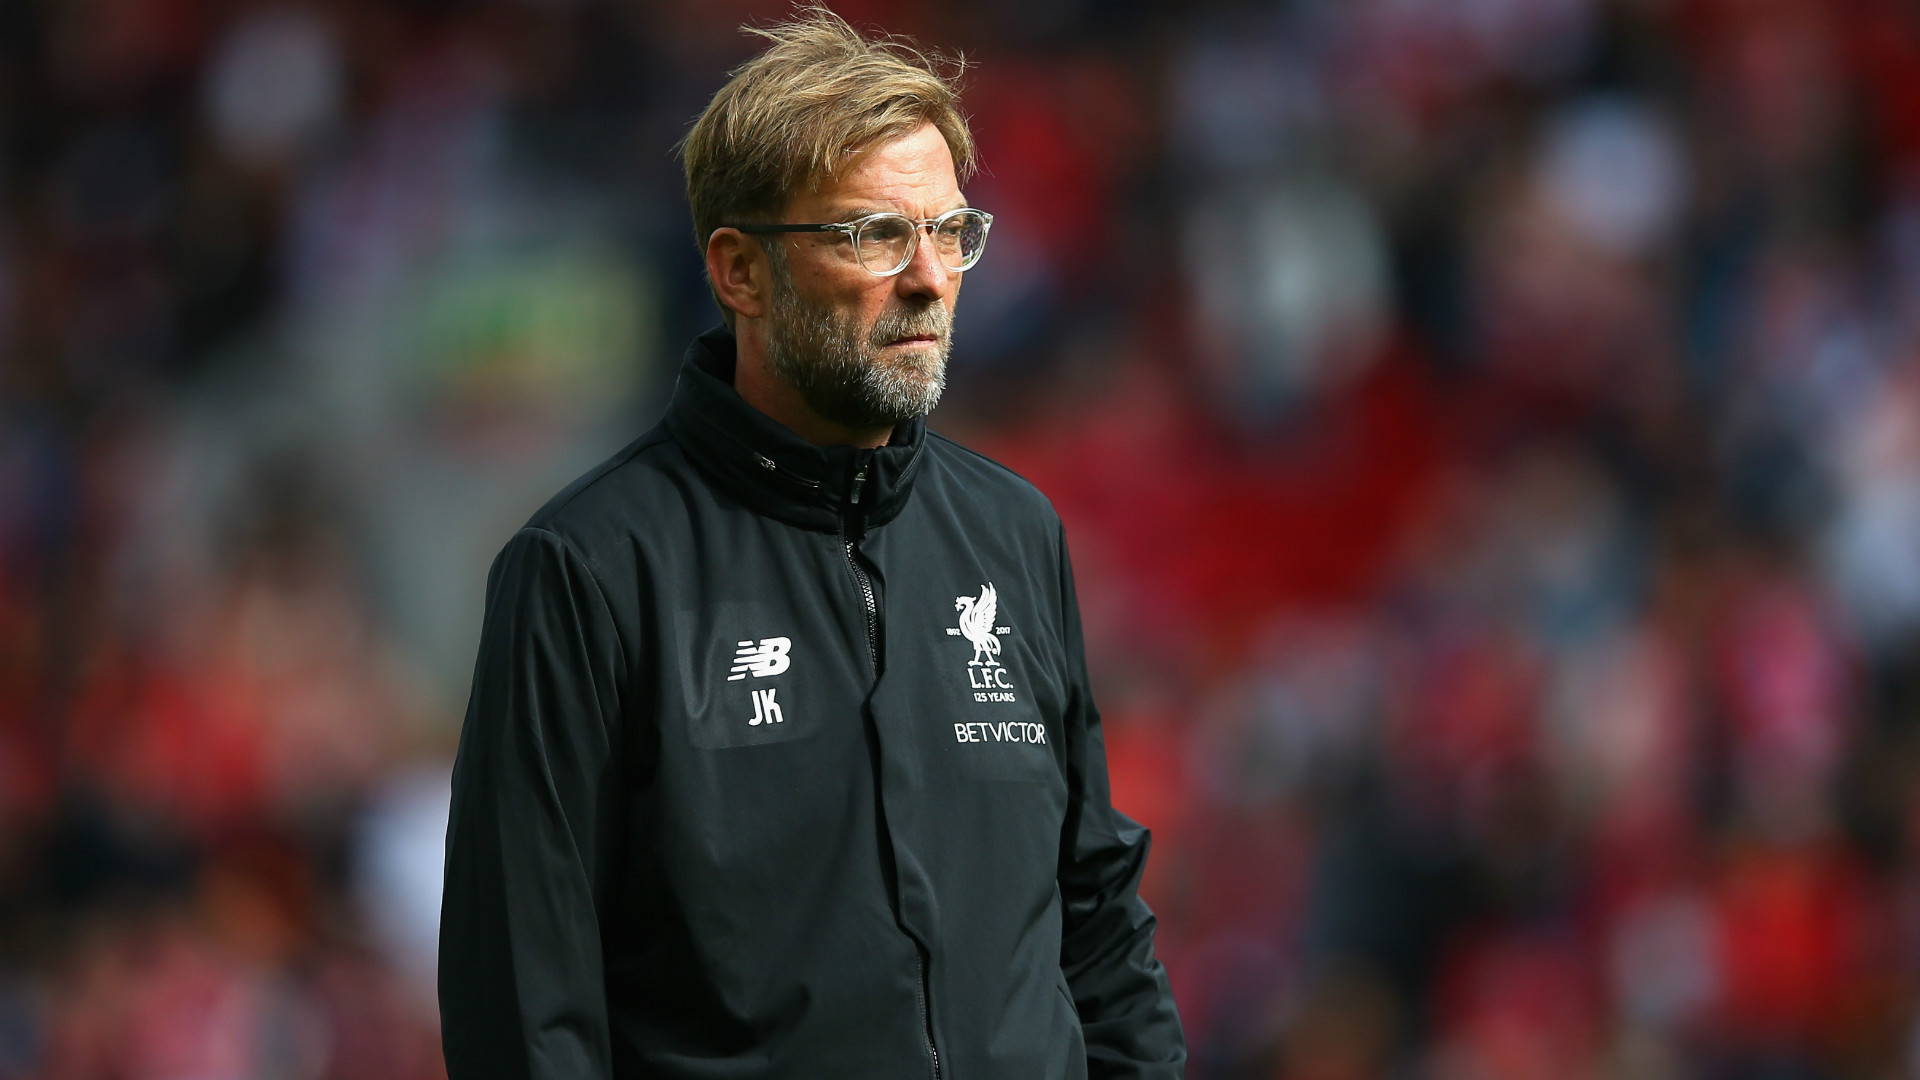 Frustrated Klopp left 'sick' after Liverpool suffer League Cup exit